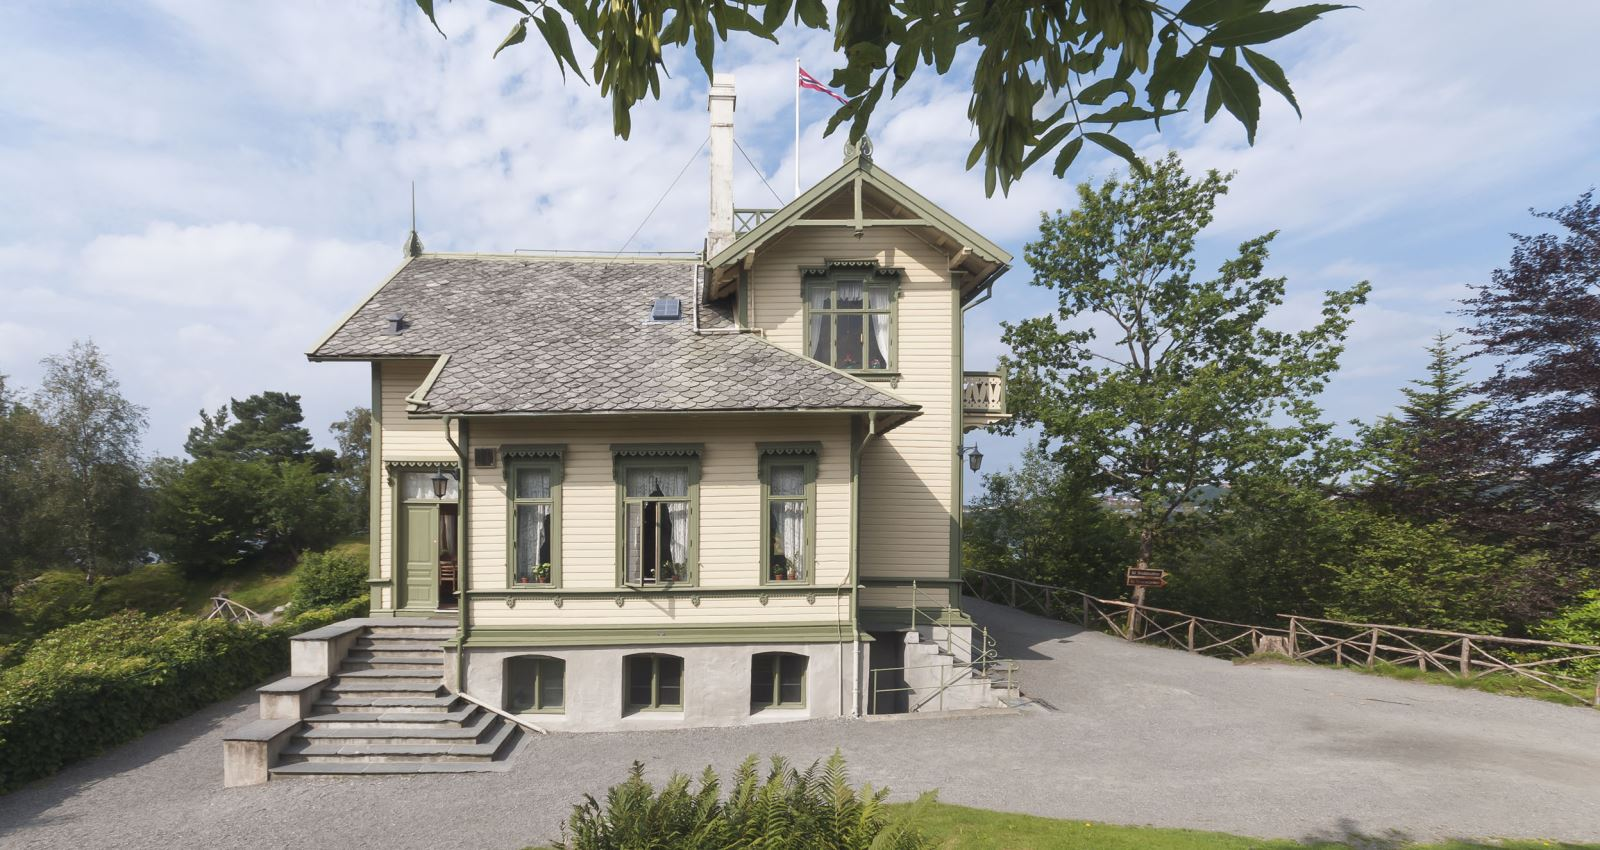 Troldhaugen Home of Edvard Grieg Bergen Norway